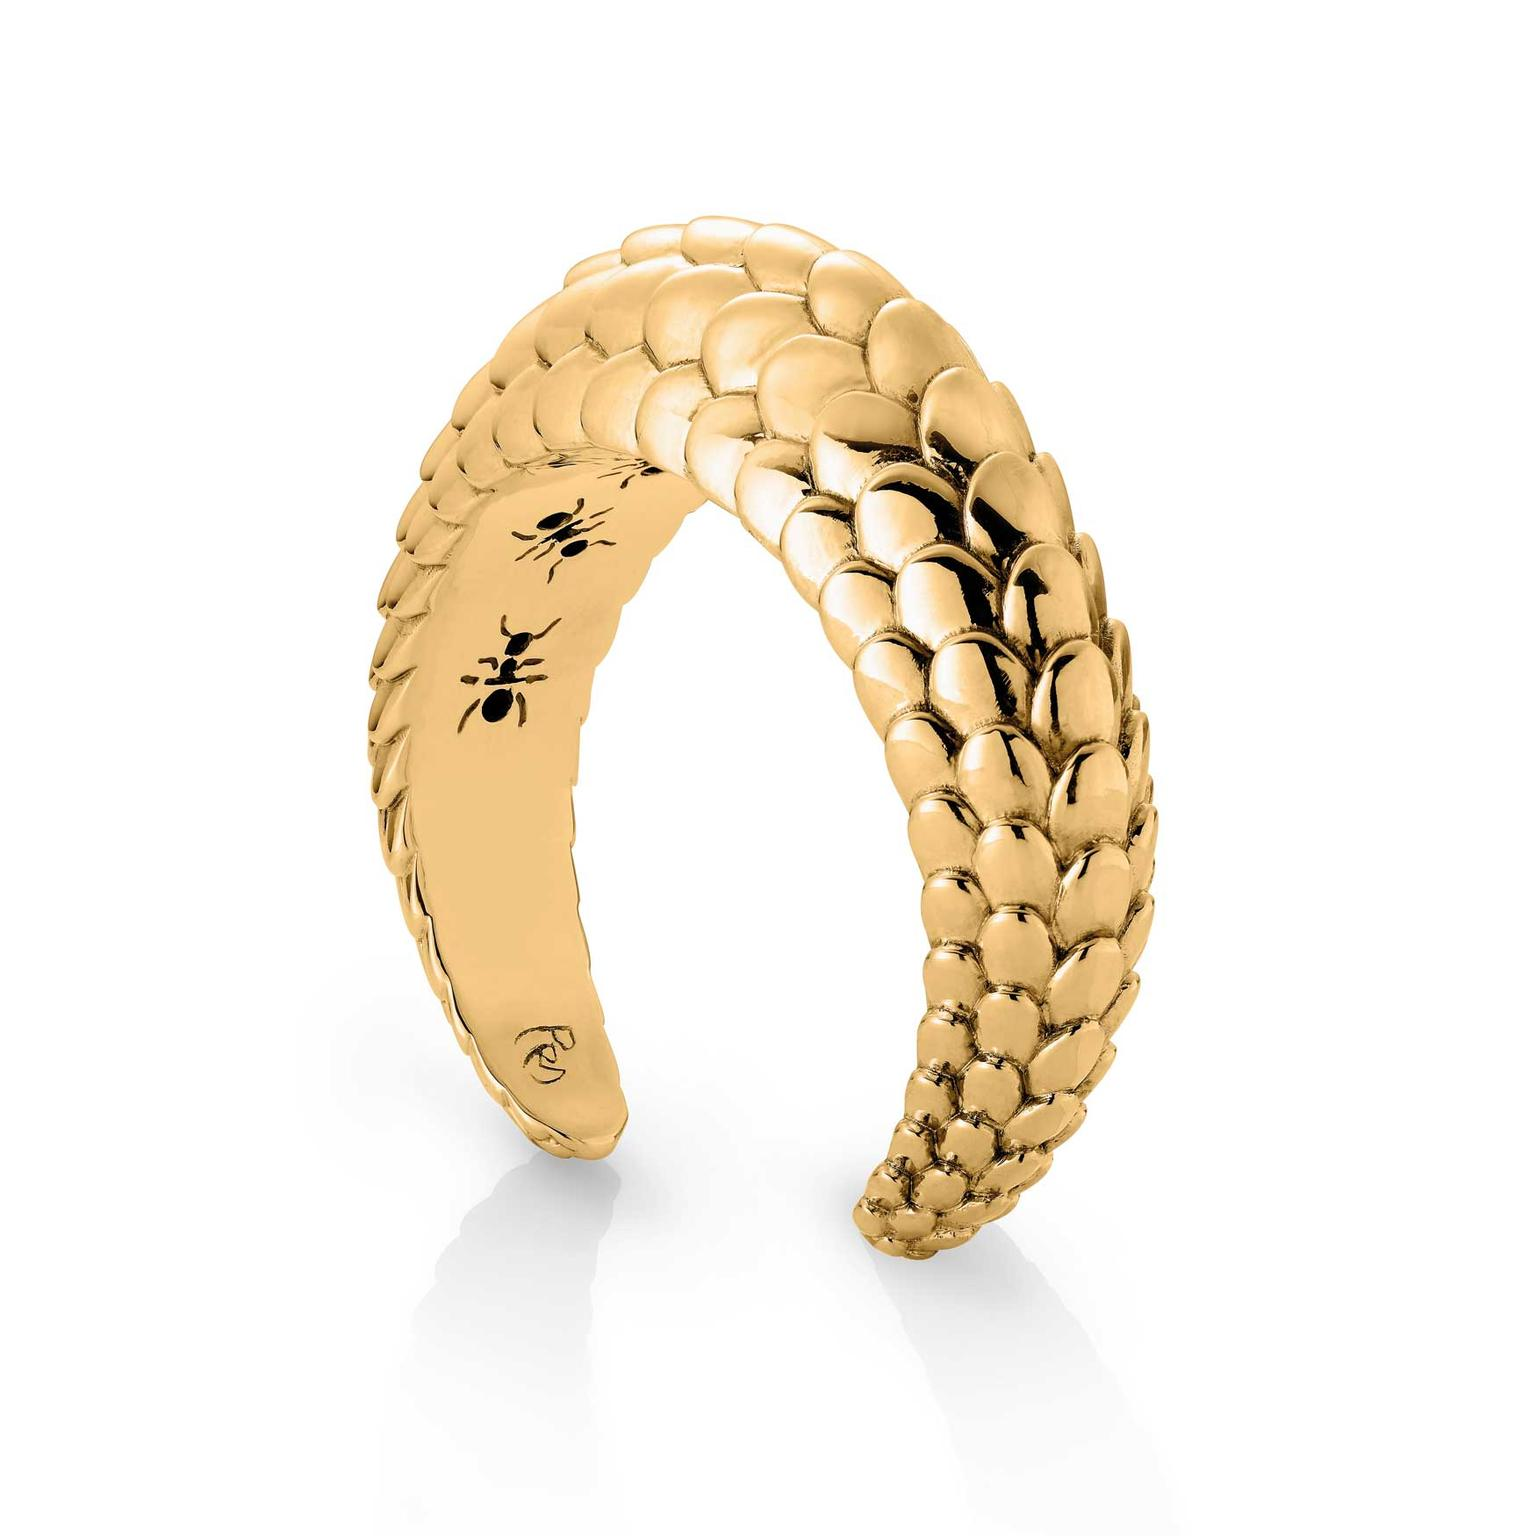 Patrick Mavros Pangolin wide yellow gold cuff